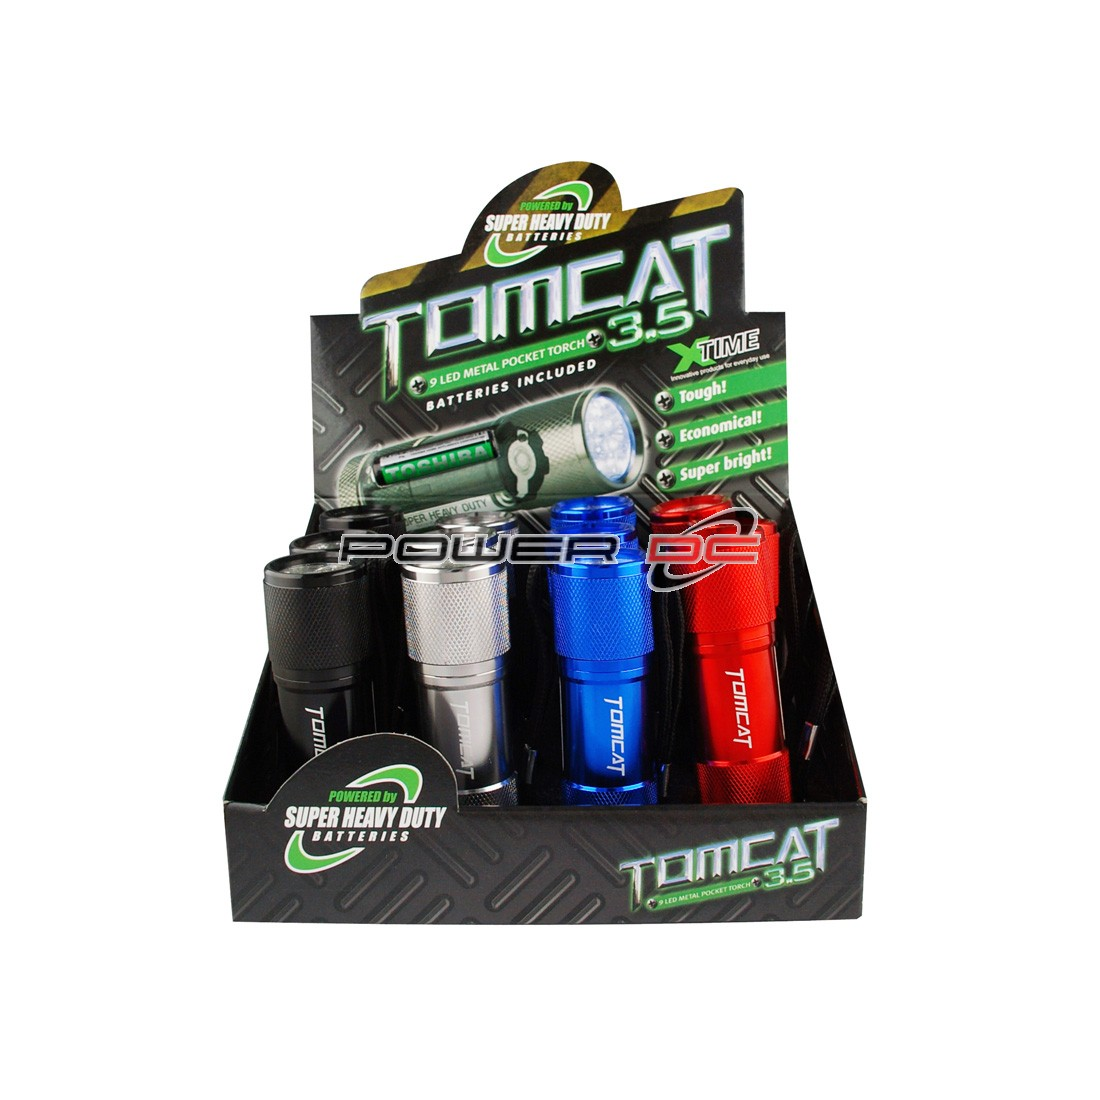 XTIME TOMCAT 3.5 9LED TORCH INC. BATT